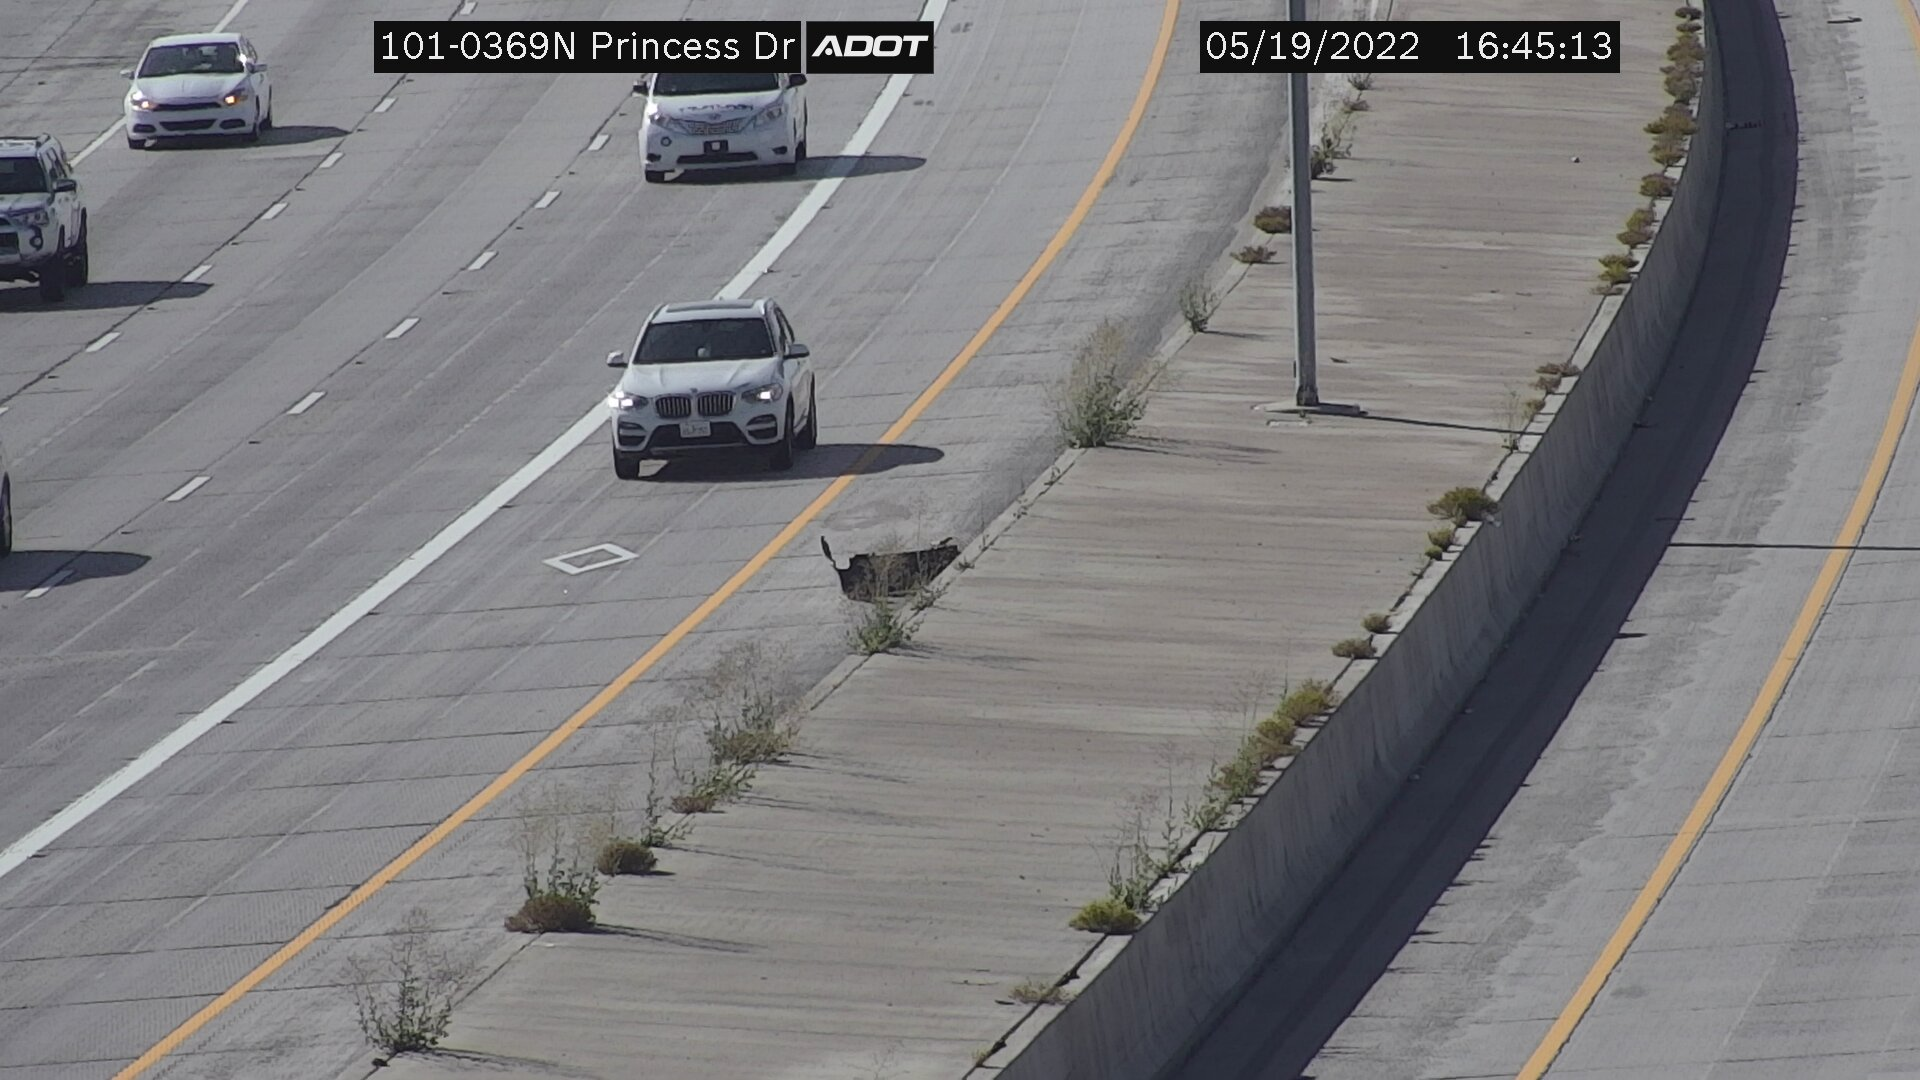 Princess Dr NB (L101) (129) - Phoenix and Arizona